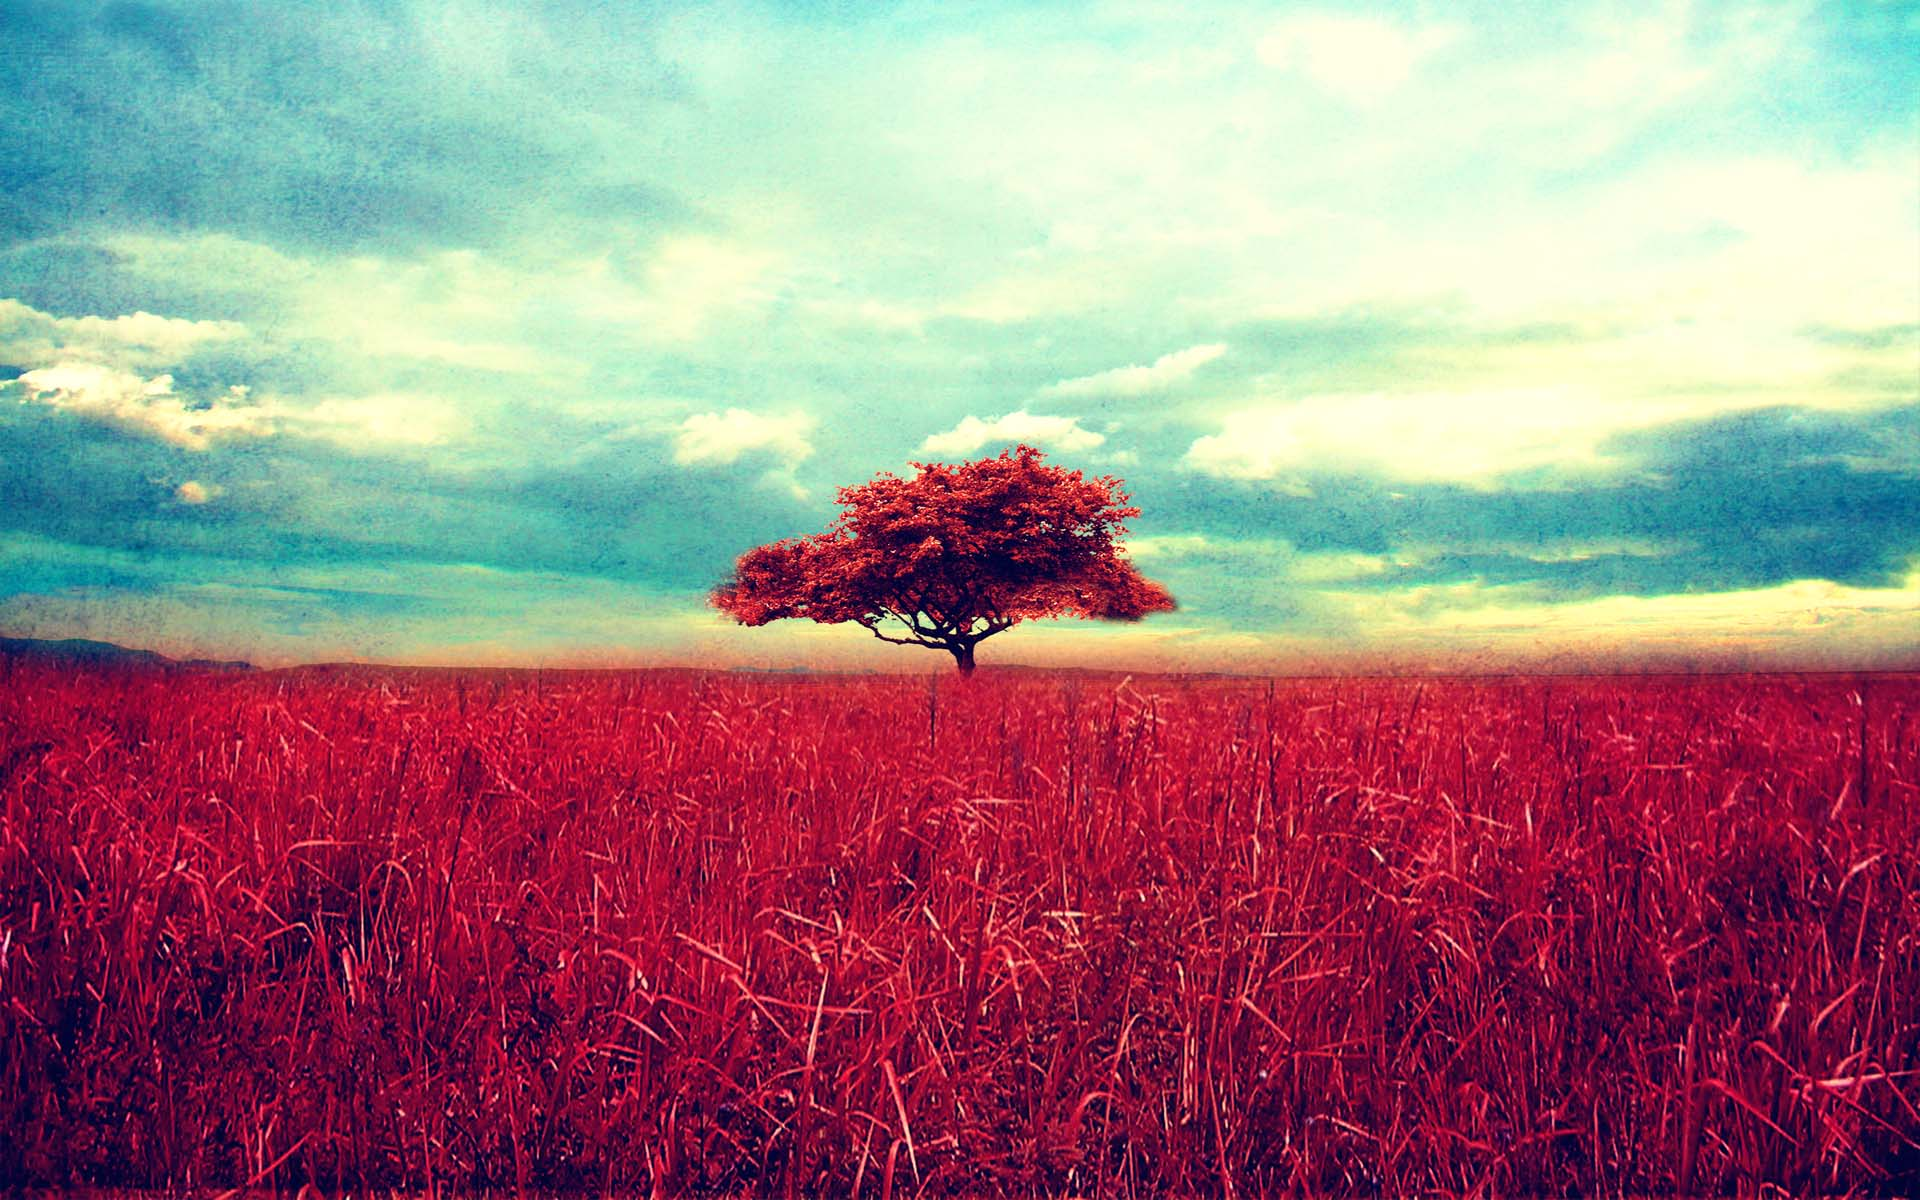 beautiful-red-tree-scene-wide-high-definition-wallpaper-download-red-tree-images-free